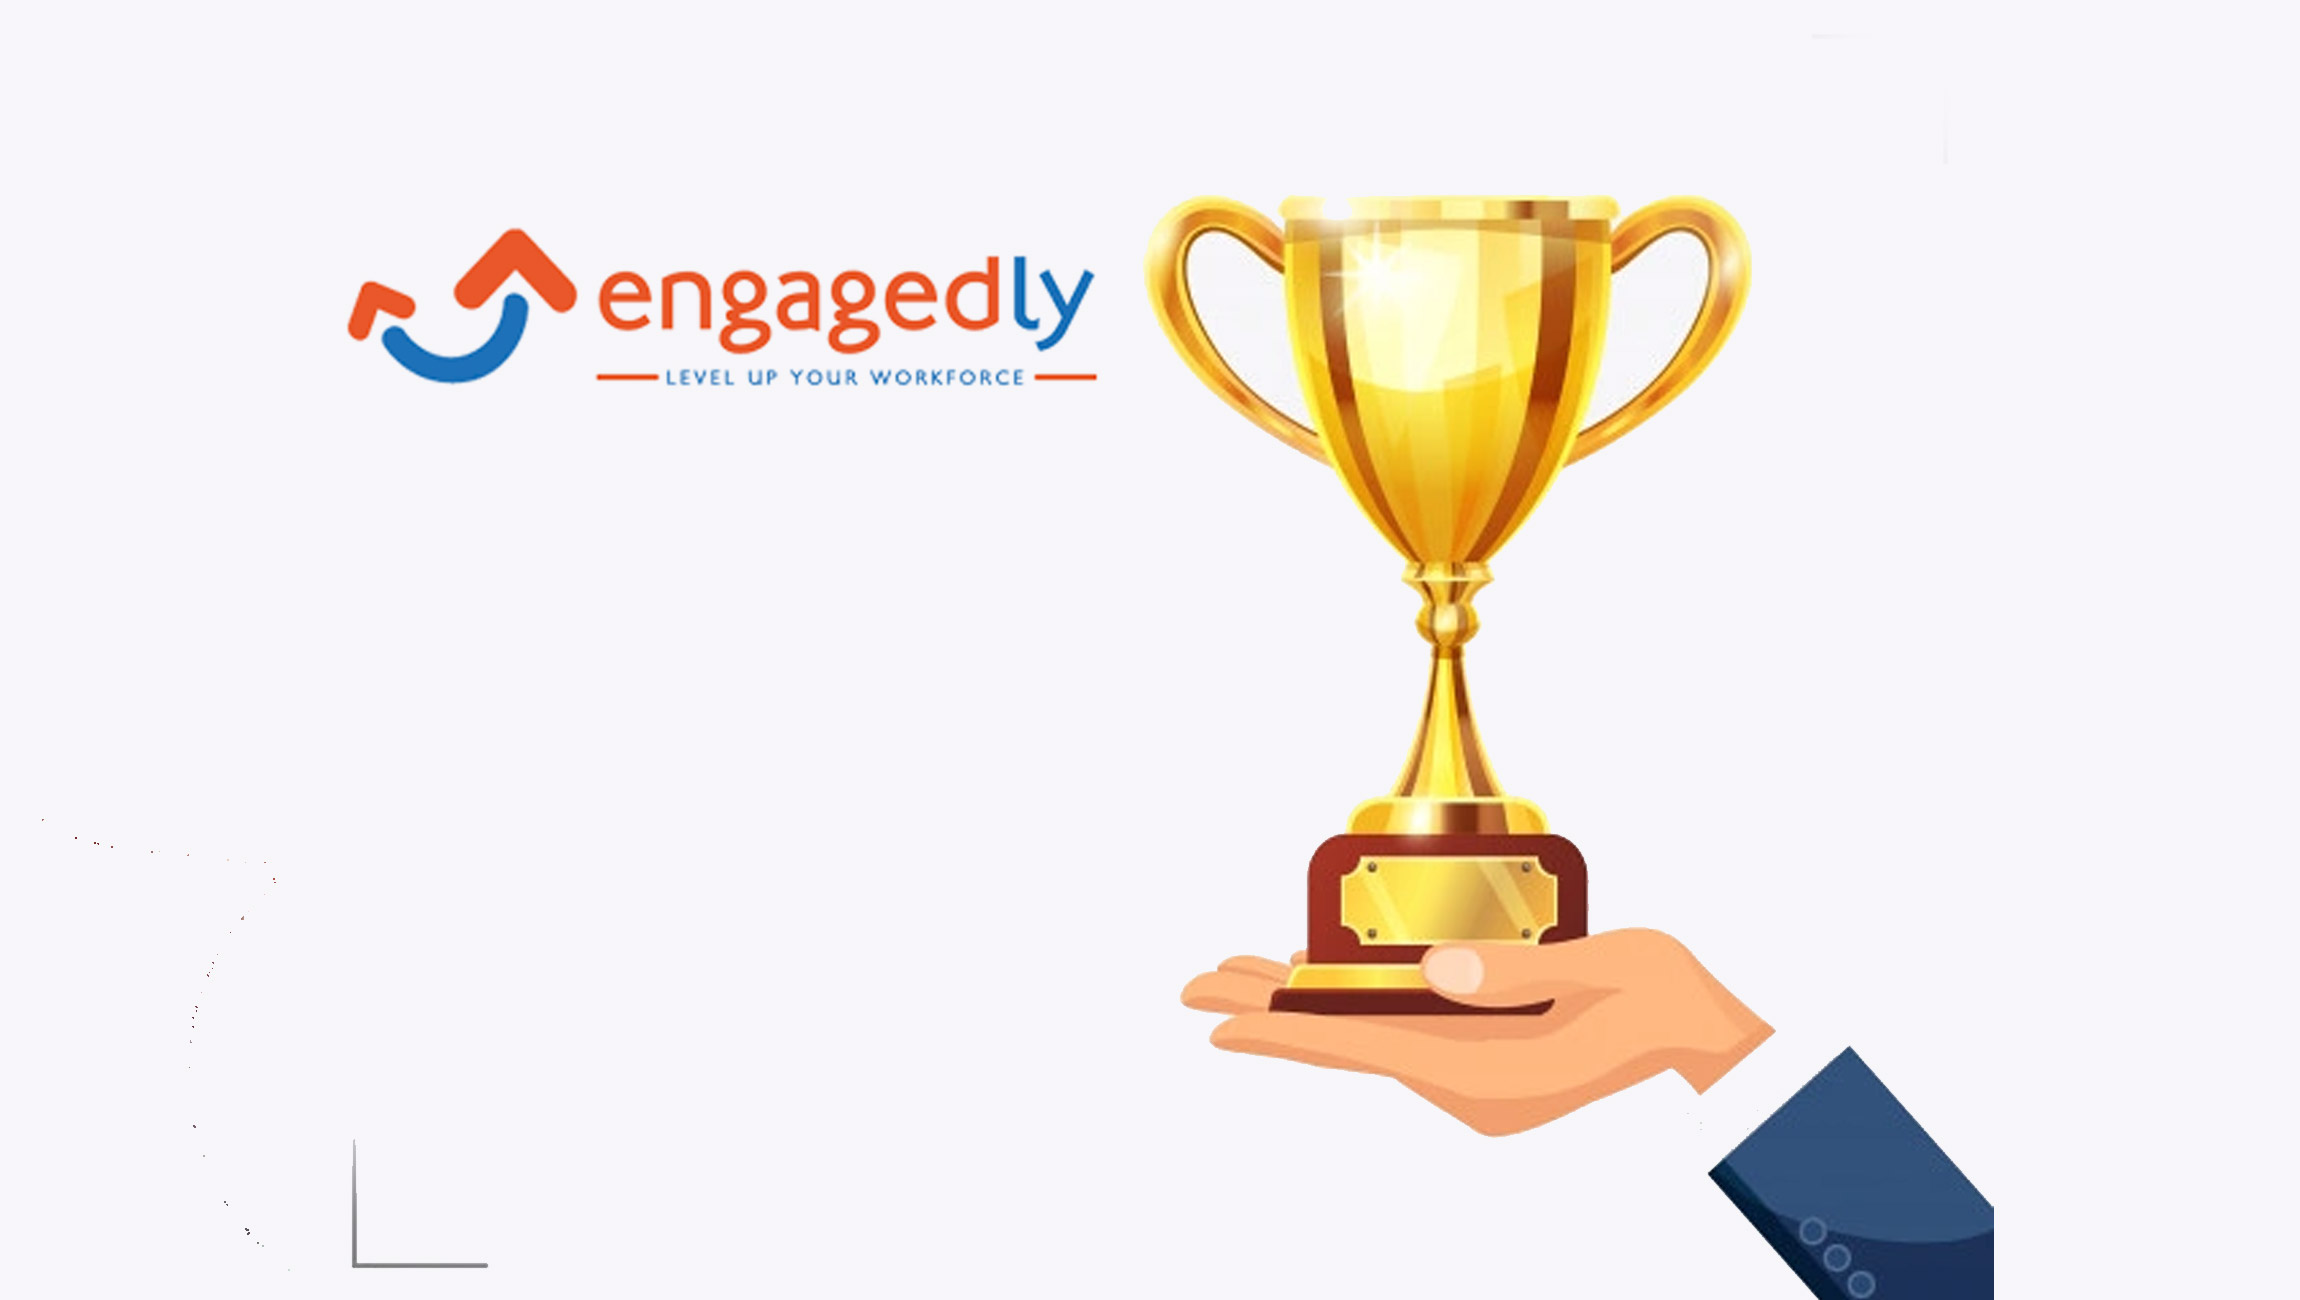 """Engagedly Awarded """"Overall Performance Management Solution of the Year"""" in 2021 RemoteTech Breakthrough Awards Program"""